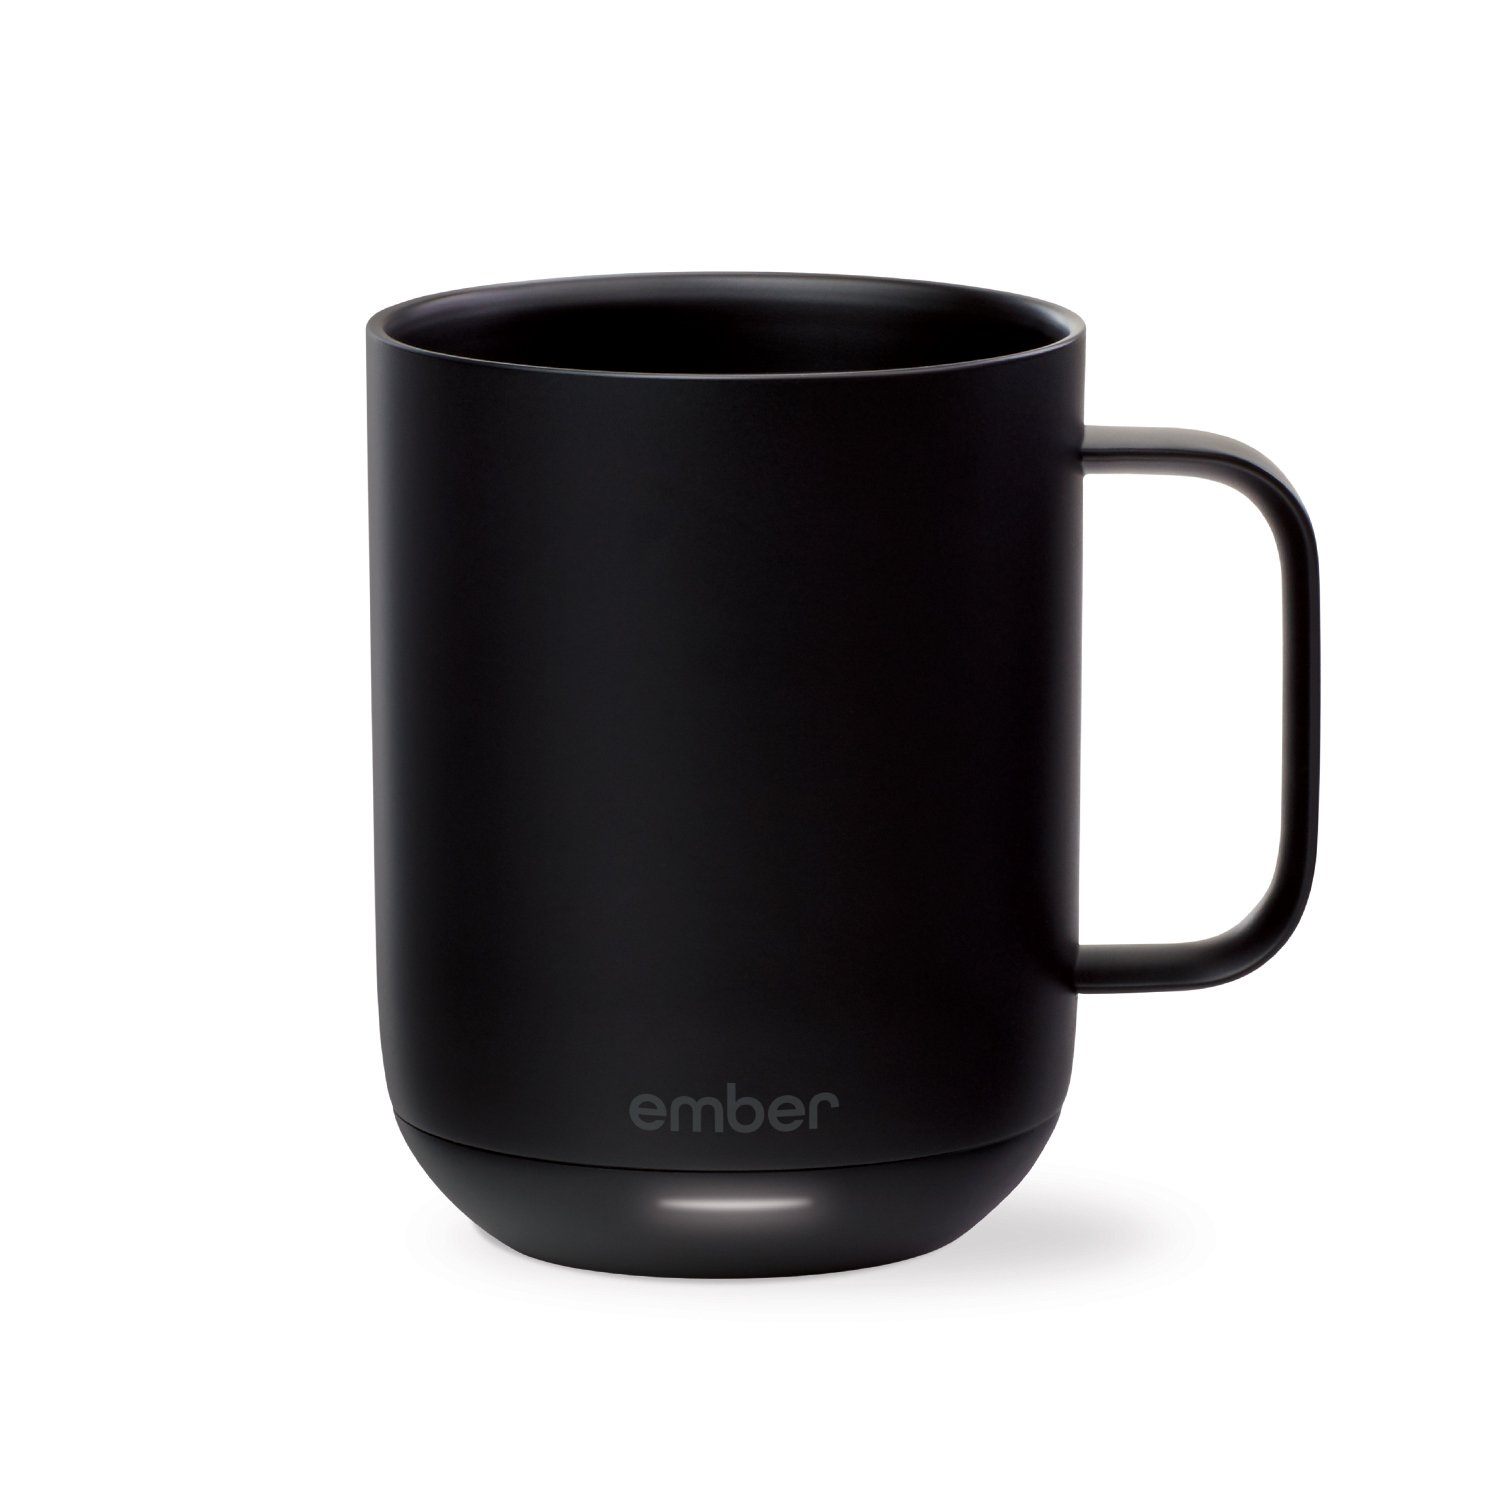 Ember Mug - This mug should be on everyone's wish list this holiday season. The Ember Mug connects to your phone through their app and notifies you once your drink has reached the perfect temperature. And since hot cocoa season is upon us, this is the ideal gift for everyone on your list (including your own)!- JD